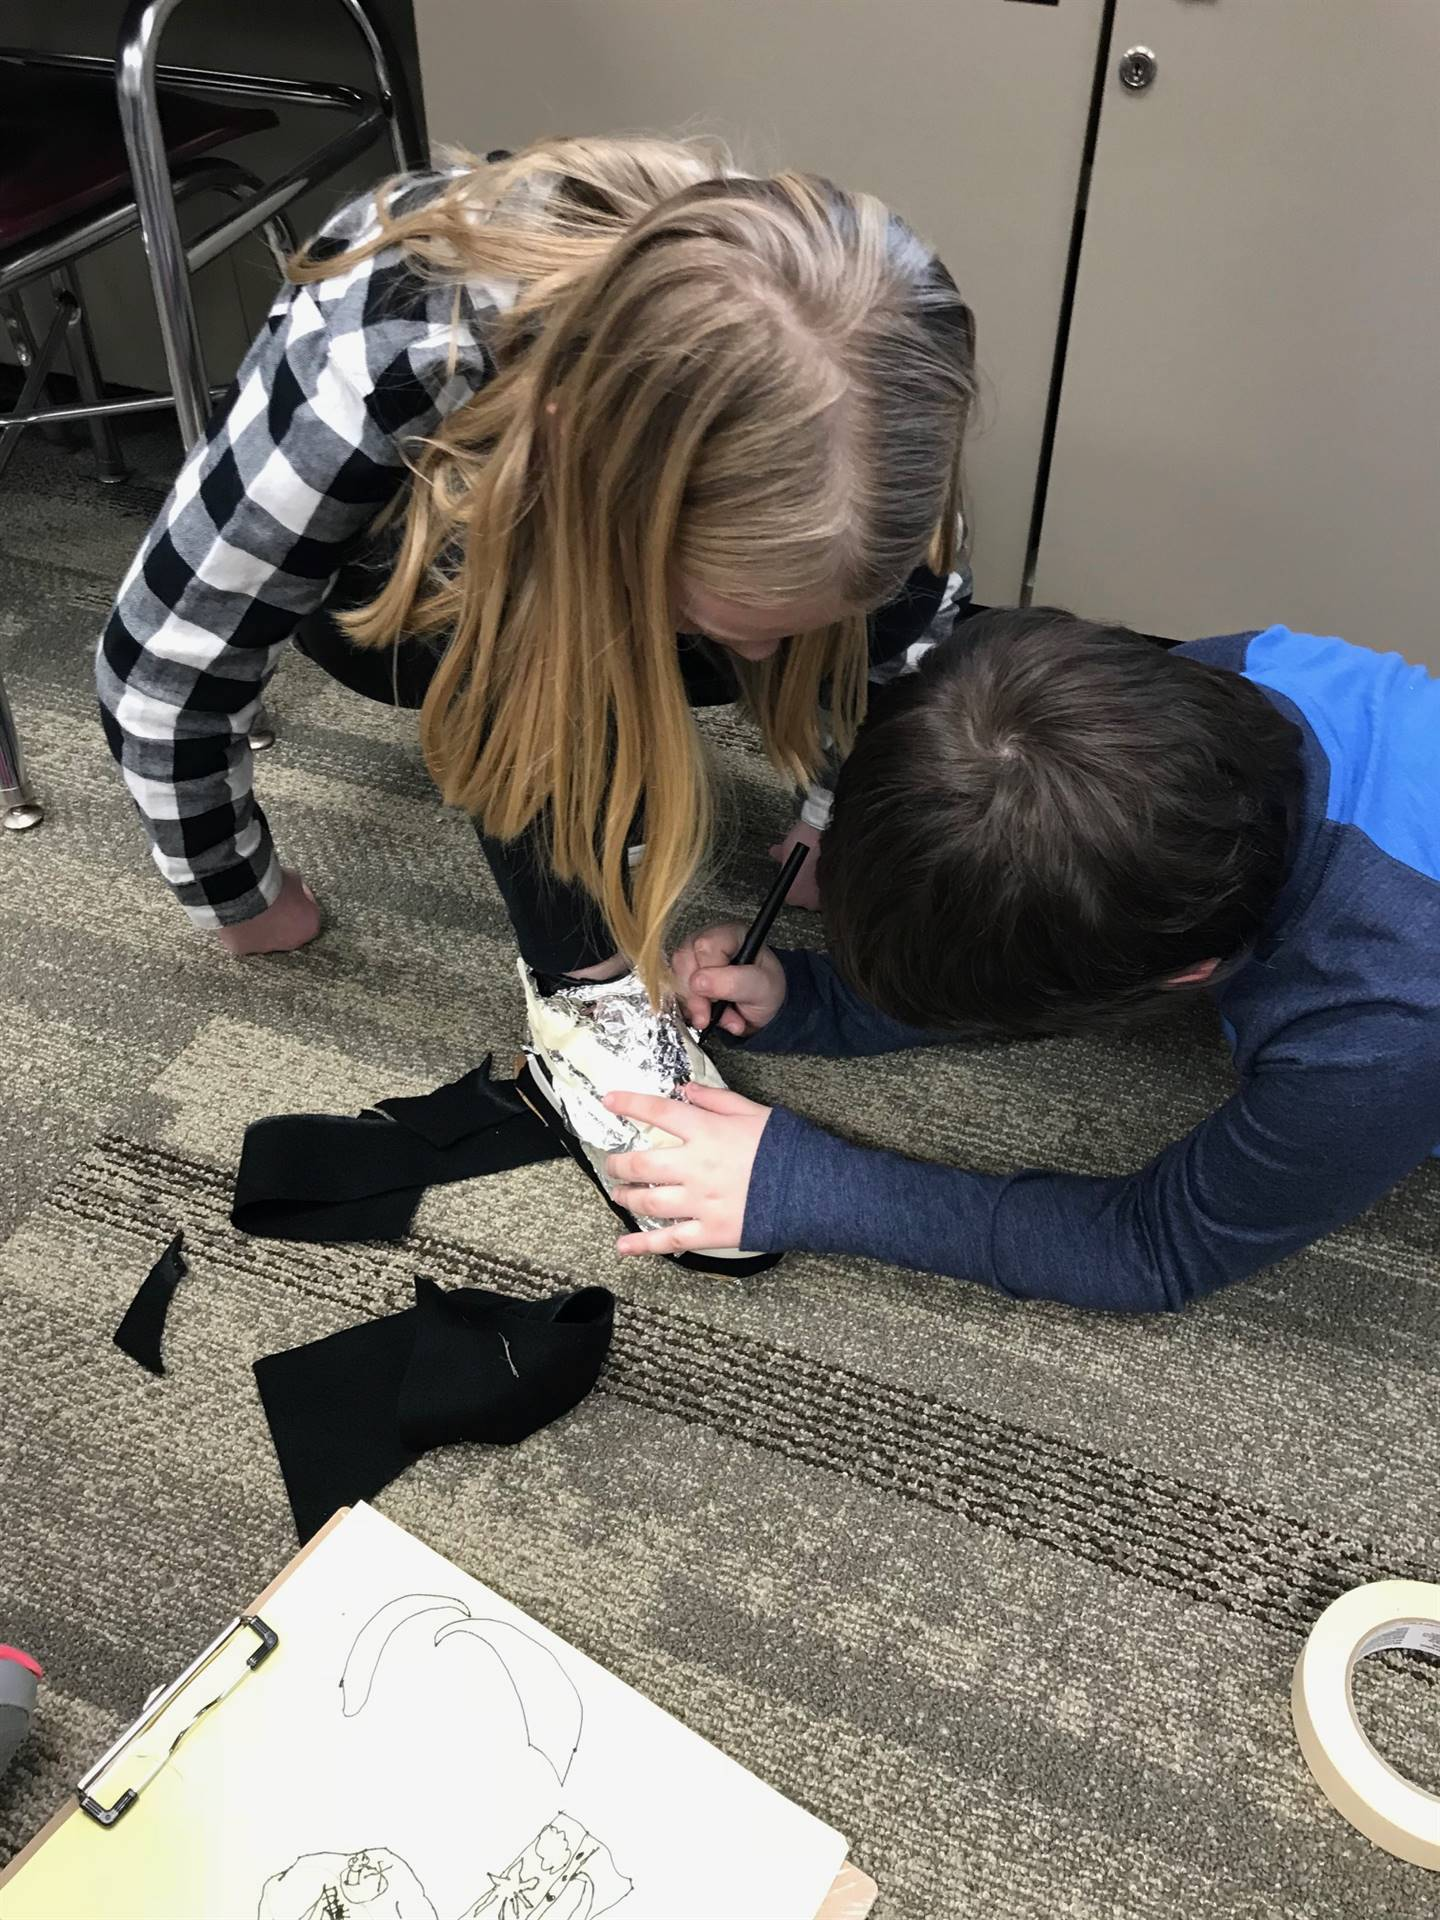 Student trying on the shoe